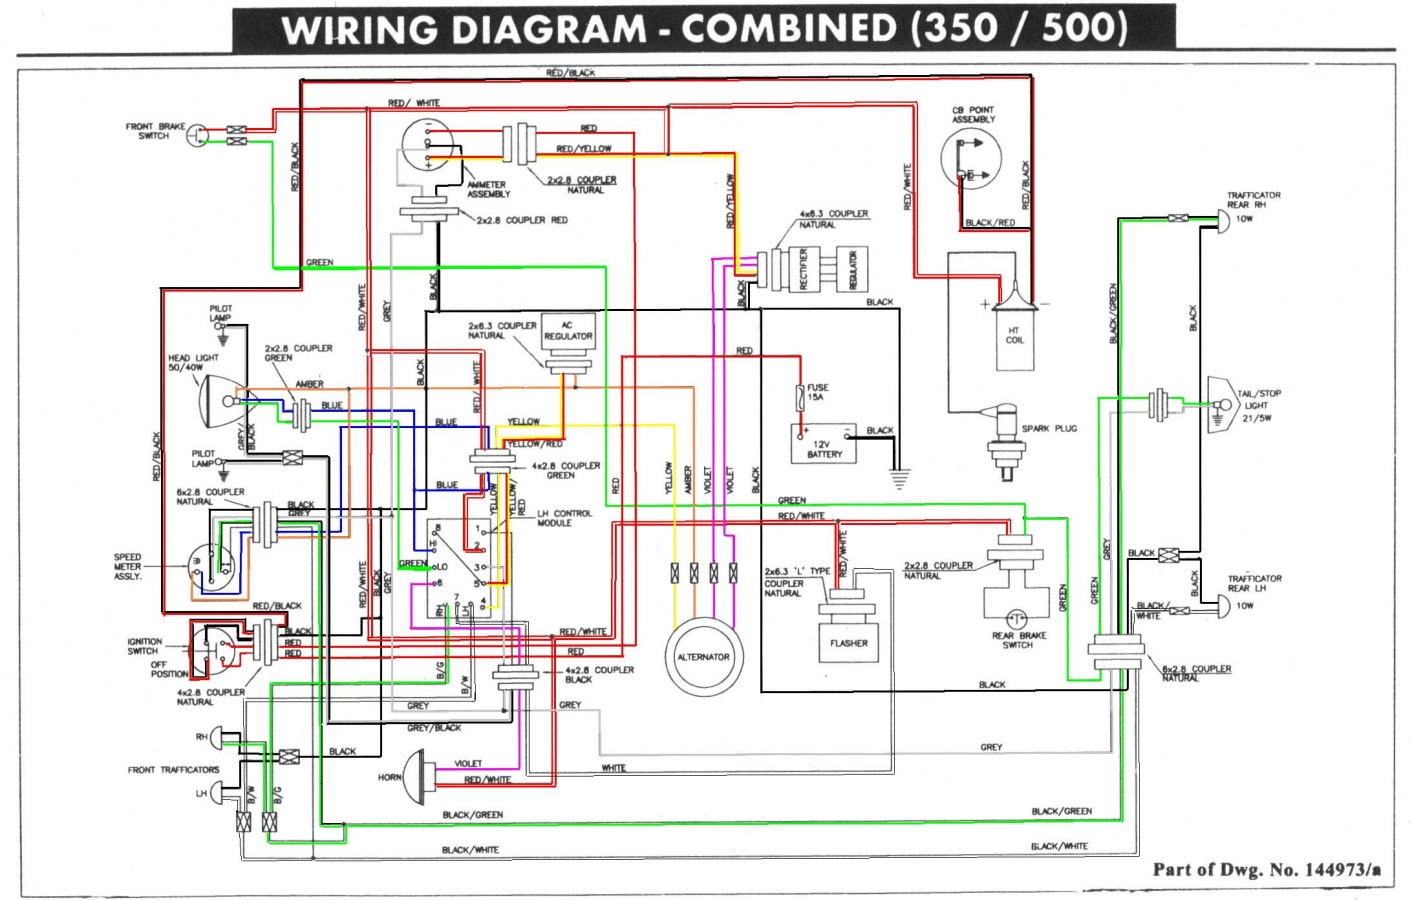 diagrams 875667 royal wiring diagrams royal enfield wiring dragster wiring diagram at mifinder.co